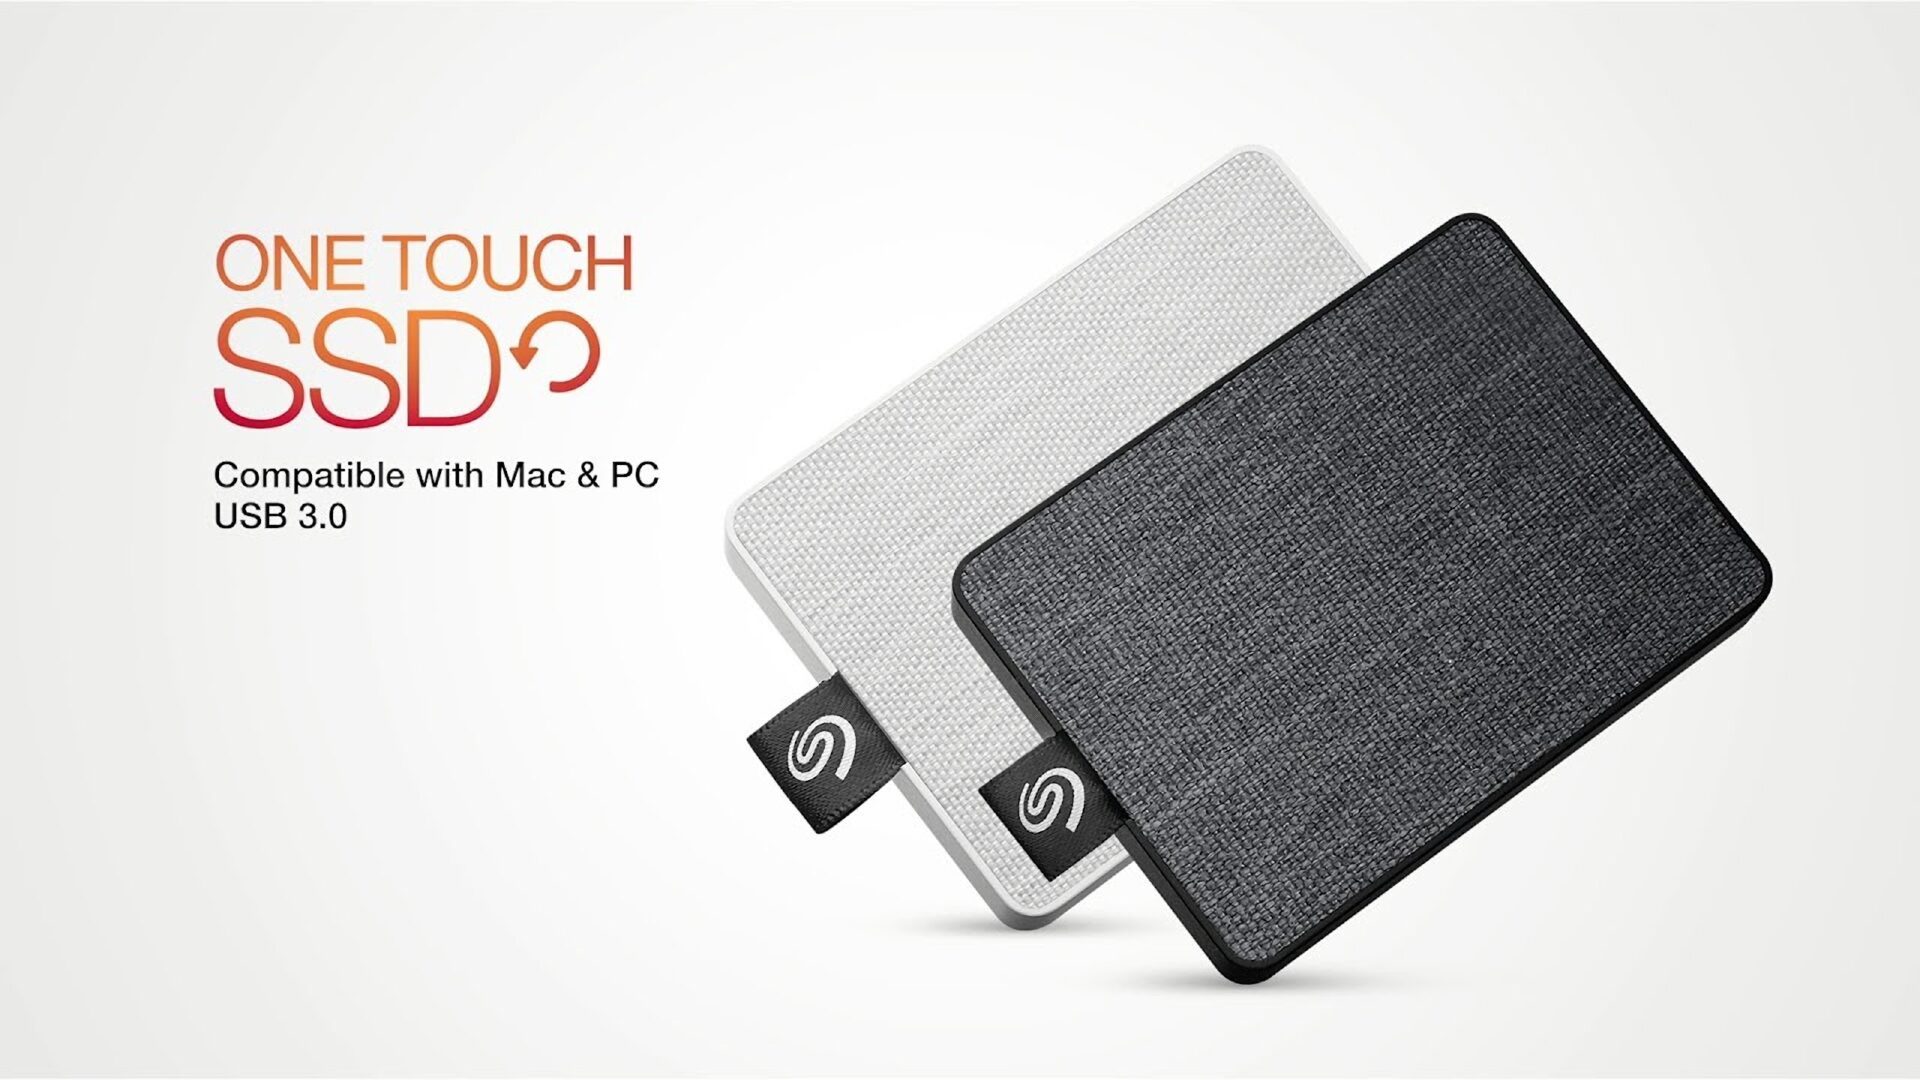 Seagate One Touch SSD (1)